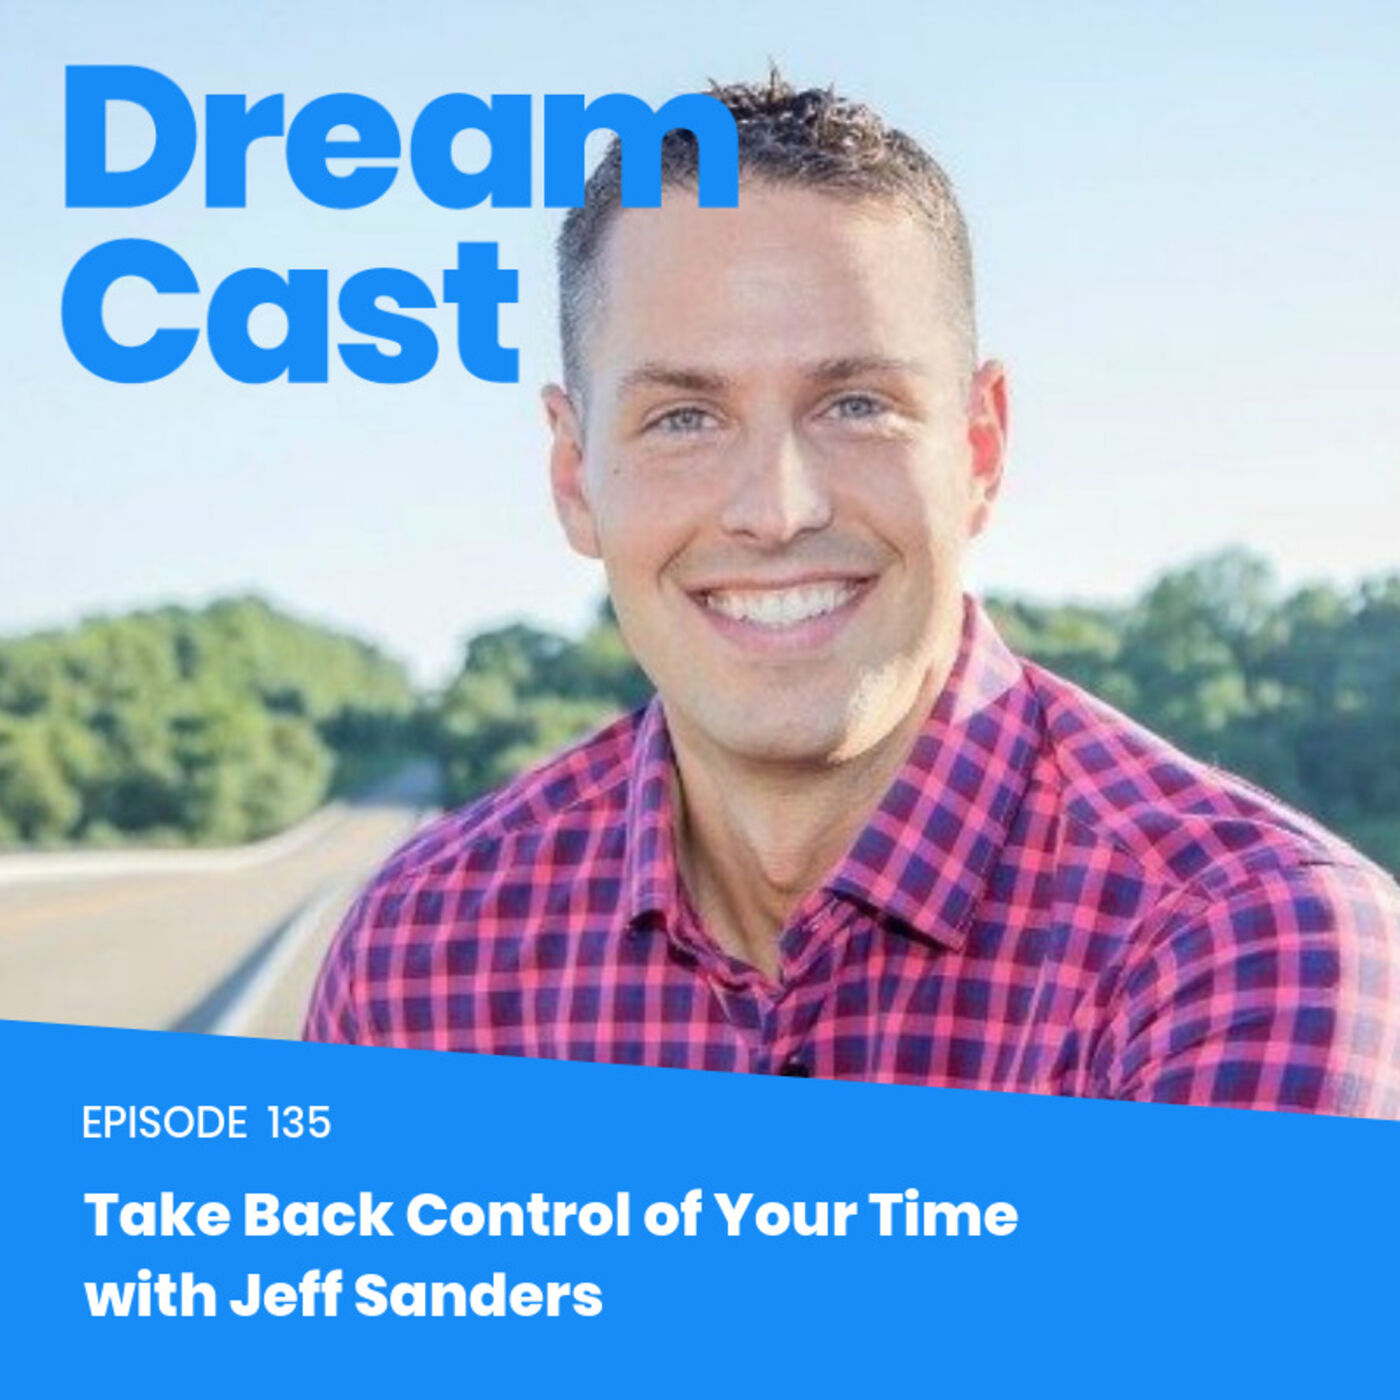 Episode 135 - Take Back Control of Your Time with Jeff Sanders